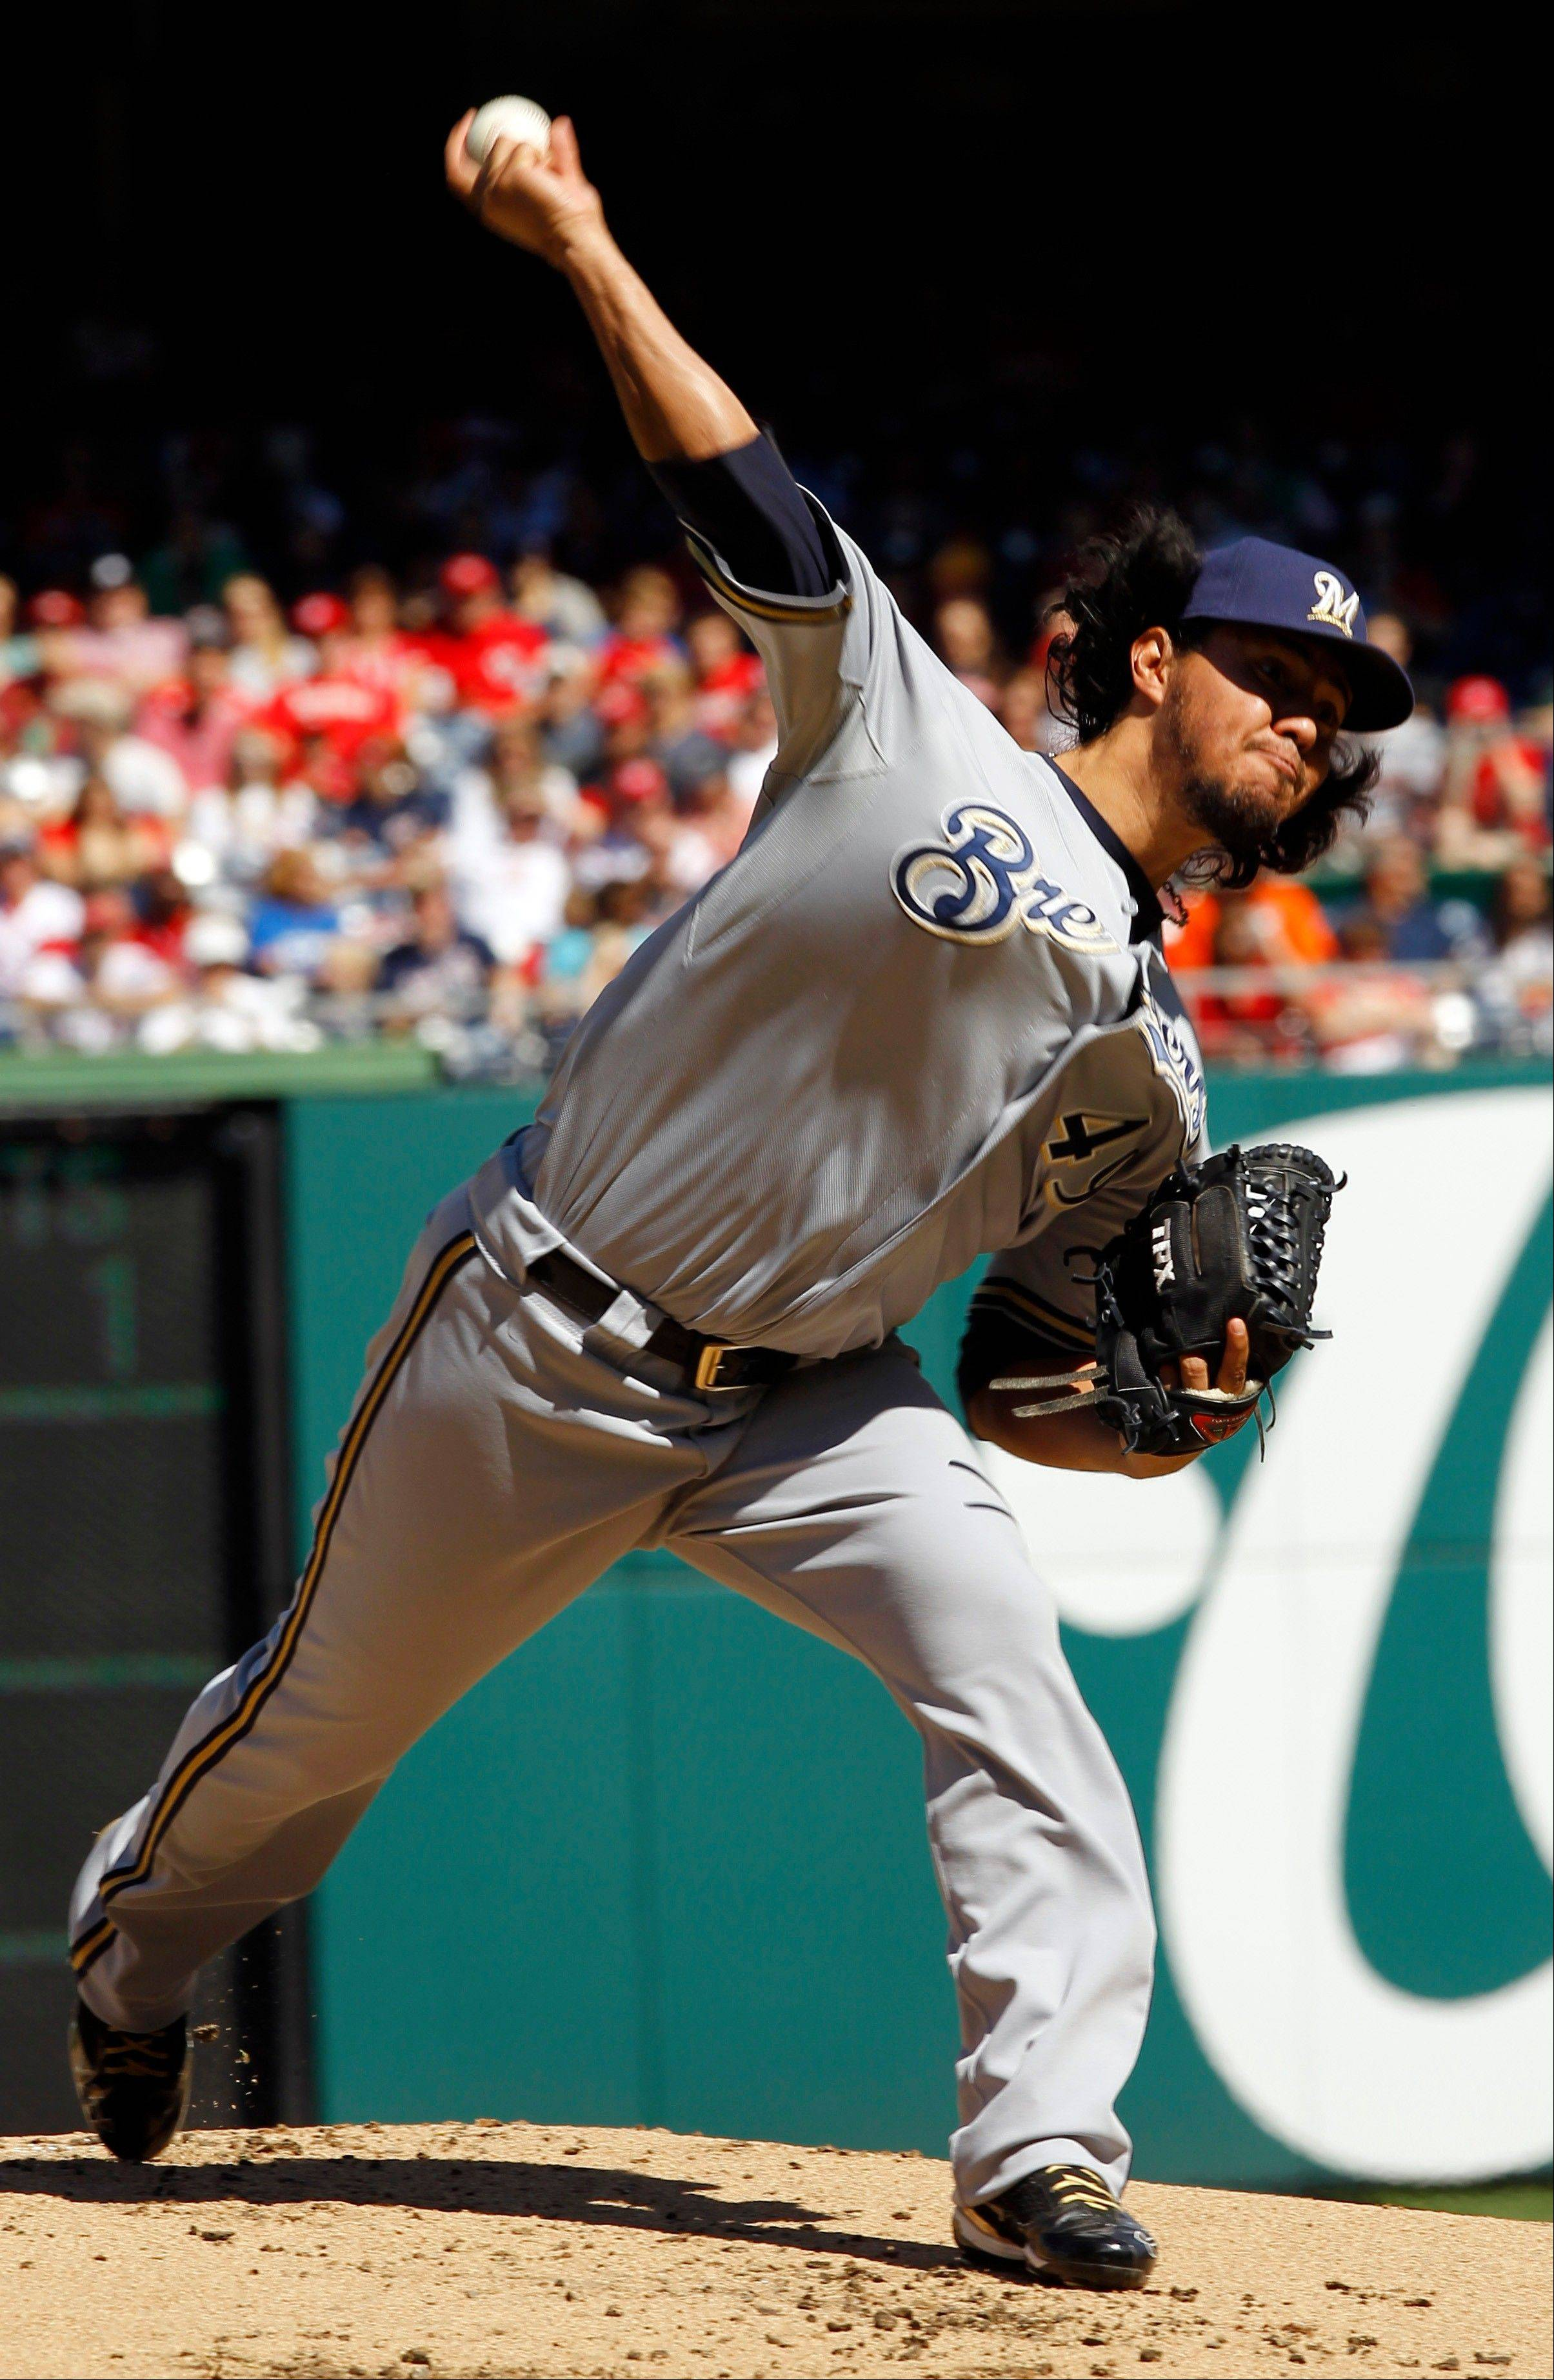 Milwaukee Brewers starting pitcher Yovani Gallardo went five innings Sunday, allowing two earned runs and six hits on the road against Washington. The Brewers have won Gallardo�s last 11 starts.